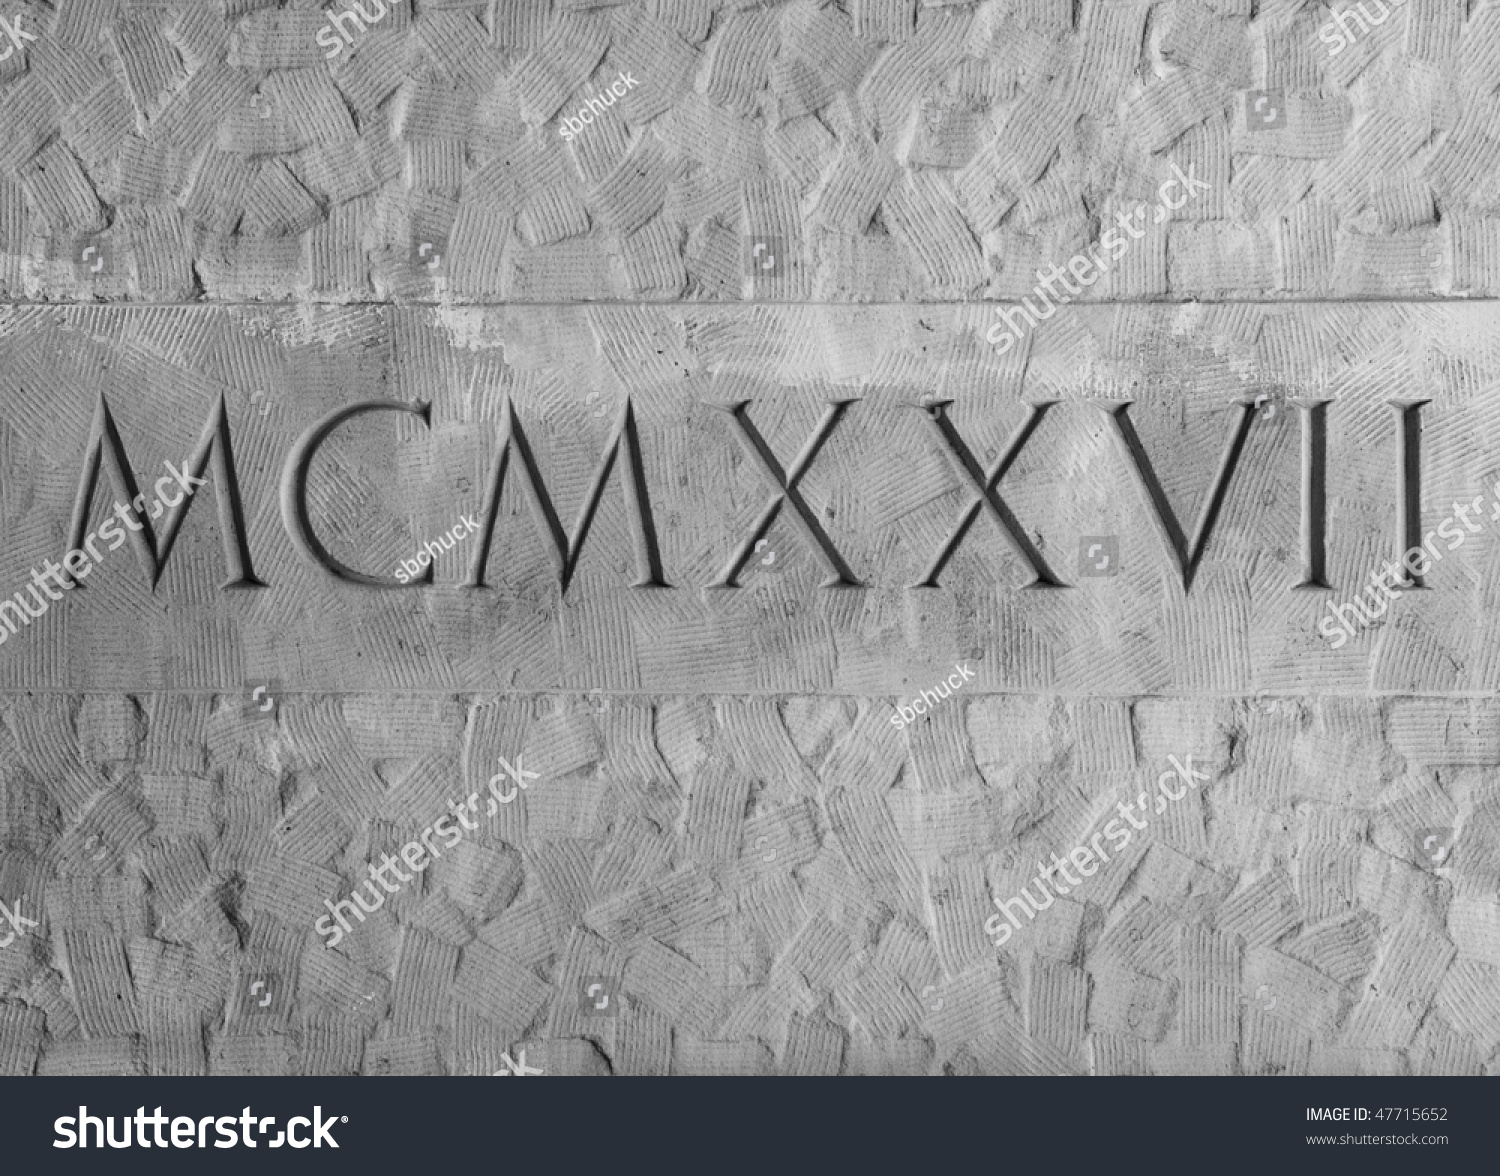 Roman Numerals Engraved In Textured Stone On Outer Wall Of